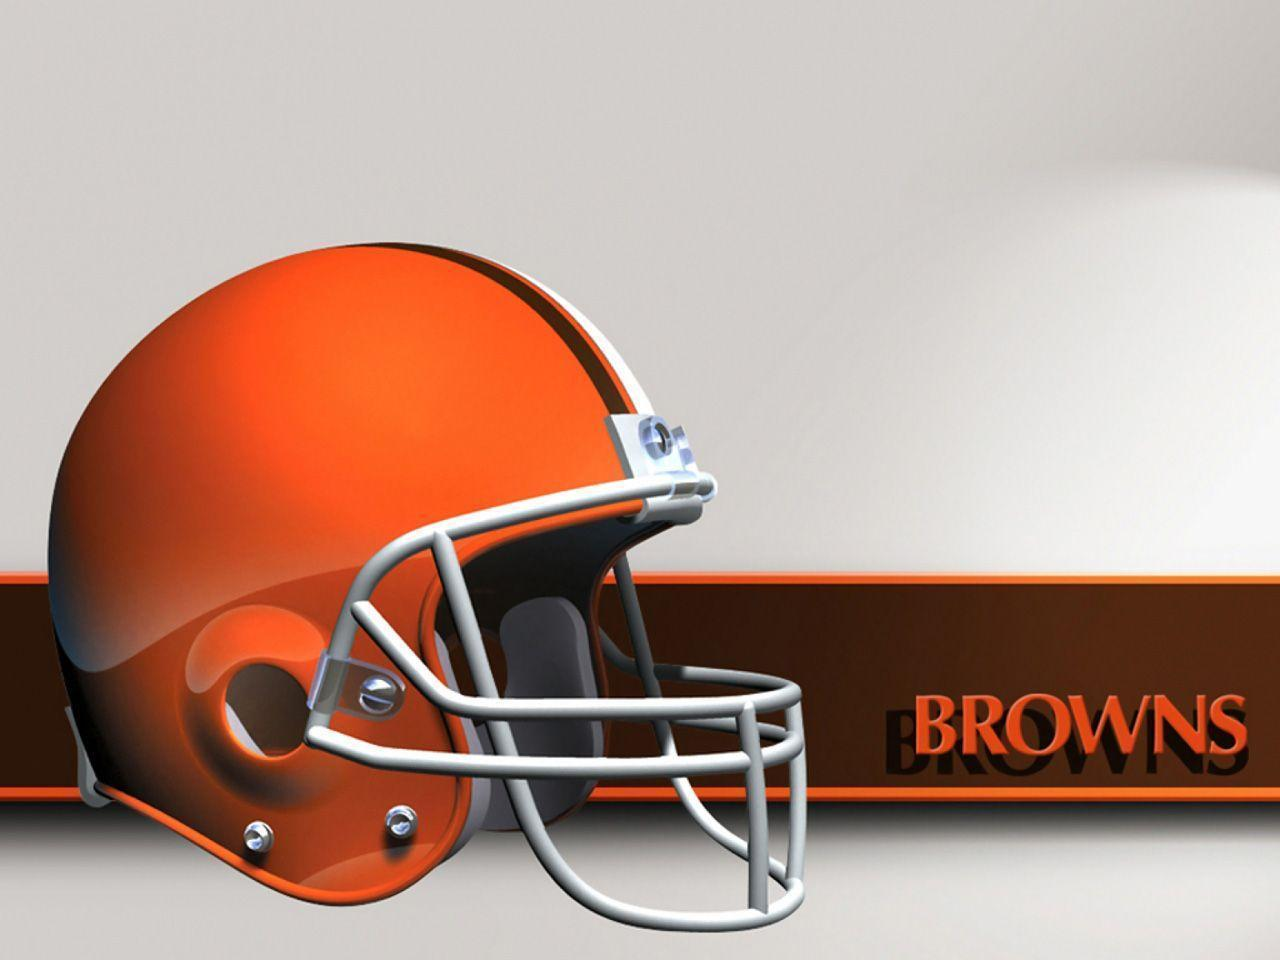 Cleveland Browns Backgrounds